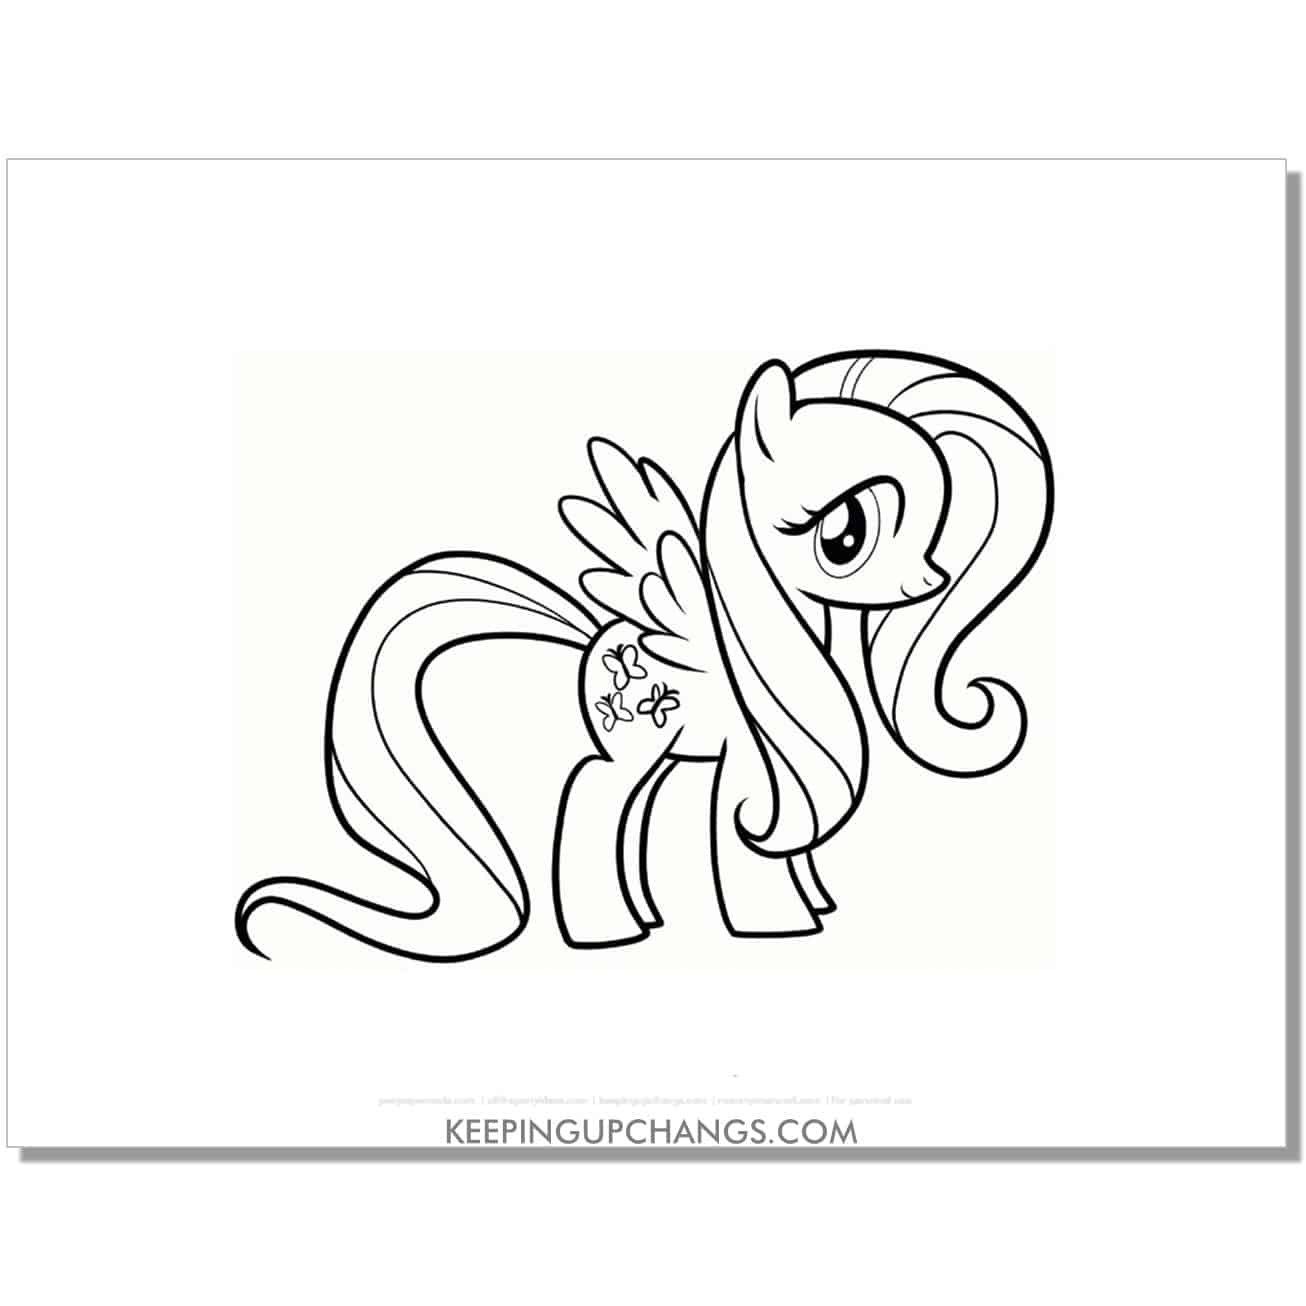 free butterfly cutie mark my little pony coloring page.